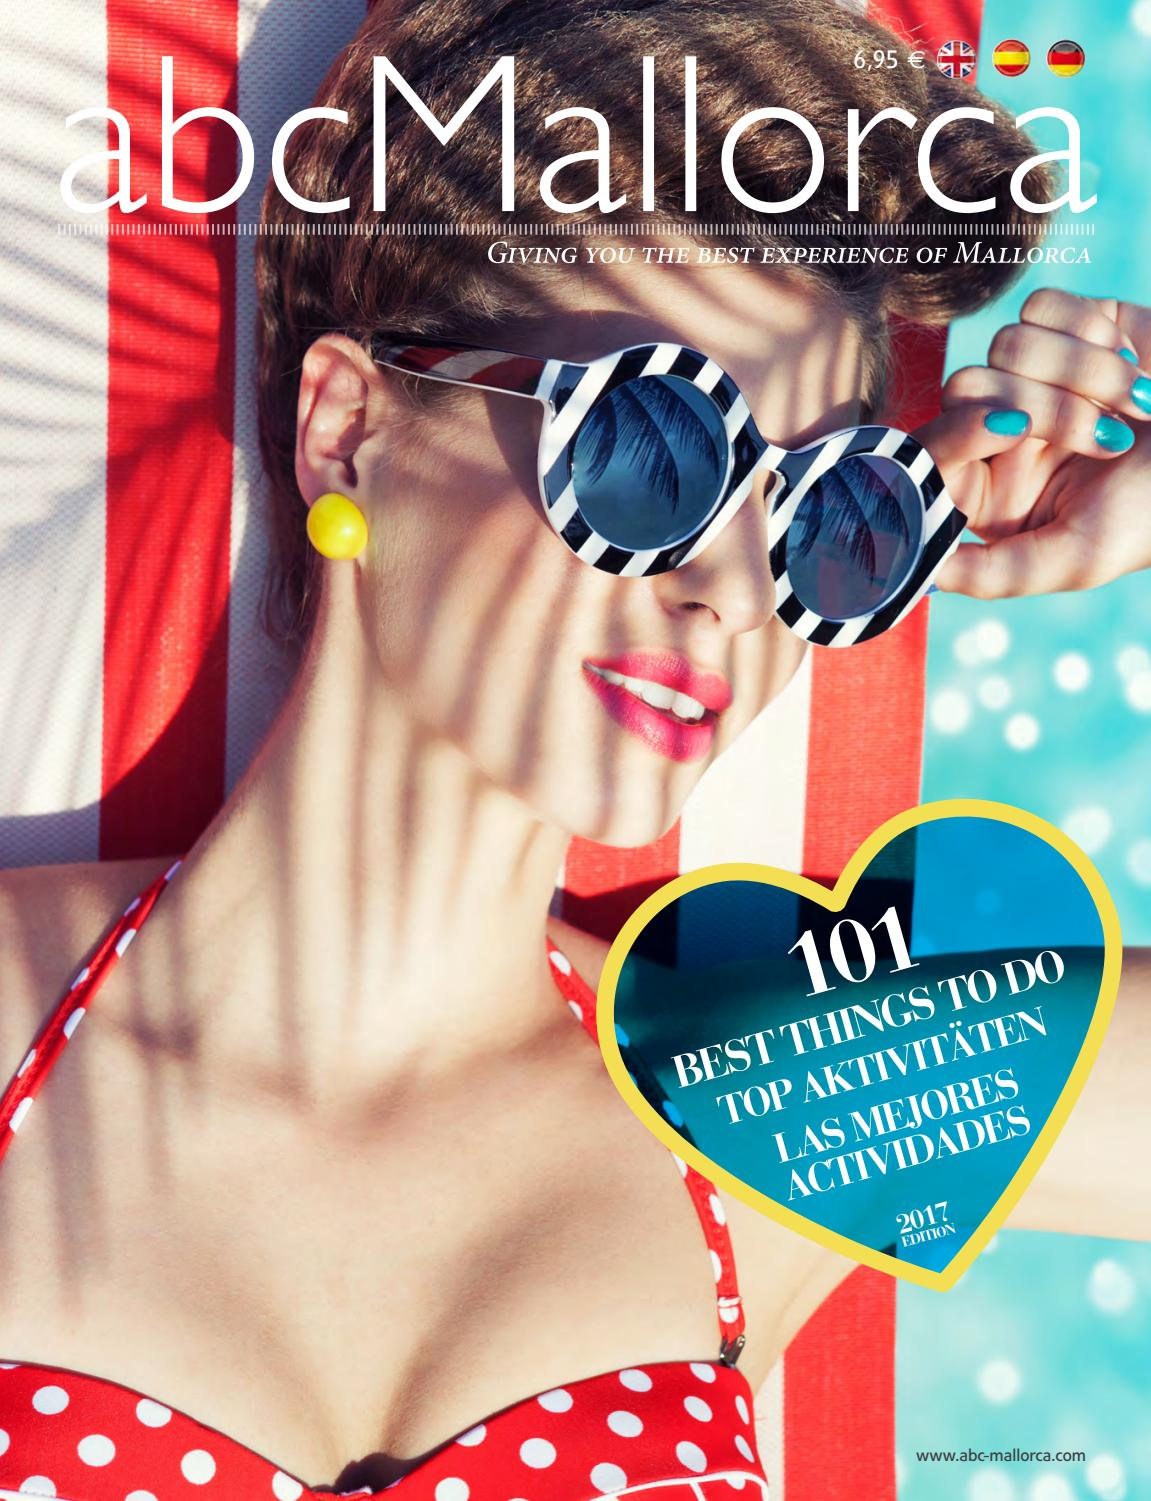 Toptip Liegestuhl Yacer 105th Abcmallorca 101 Mallorca S Best Things To Do Guide 2017 2018